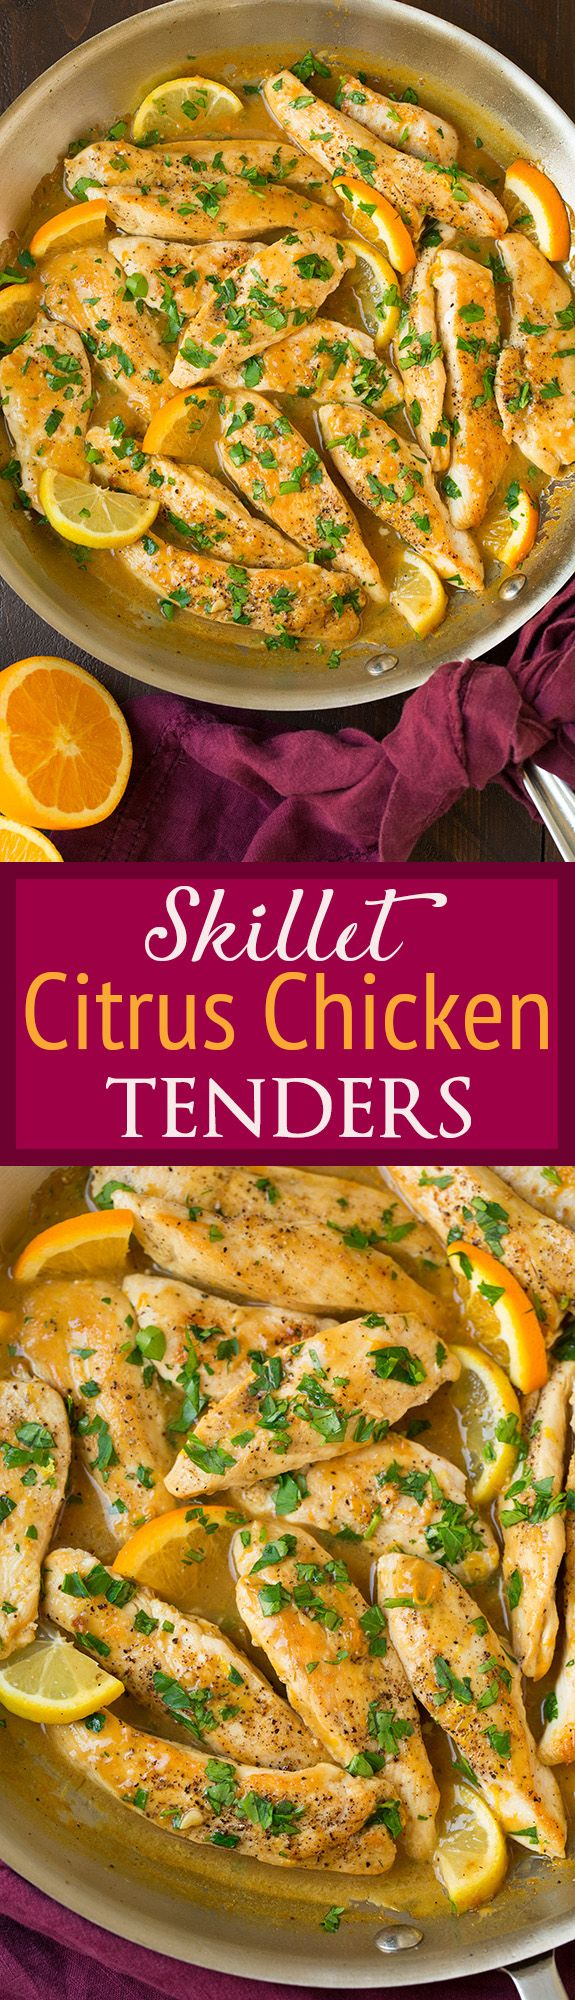 Skillet Citrus Chicken Tenders - easy and deliciously flavorful! Love the bright citrus flavor with the chicken!